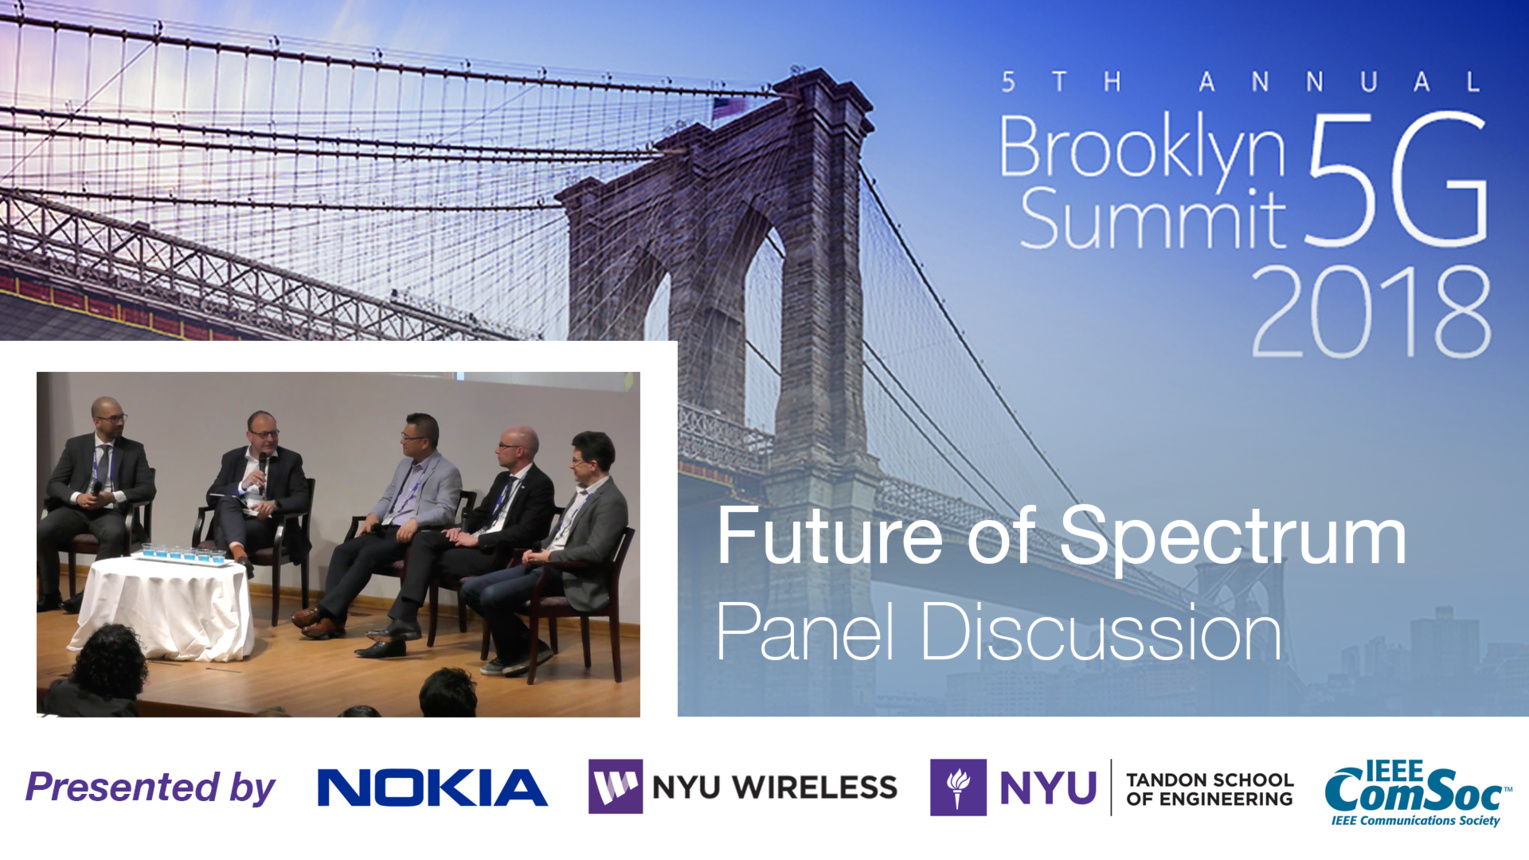 Future of Spectrum Panel - Brooklyn 5G Summit 2018